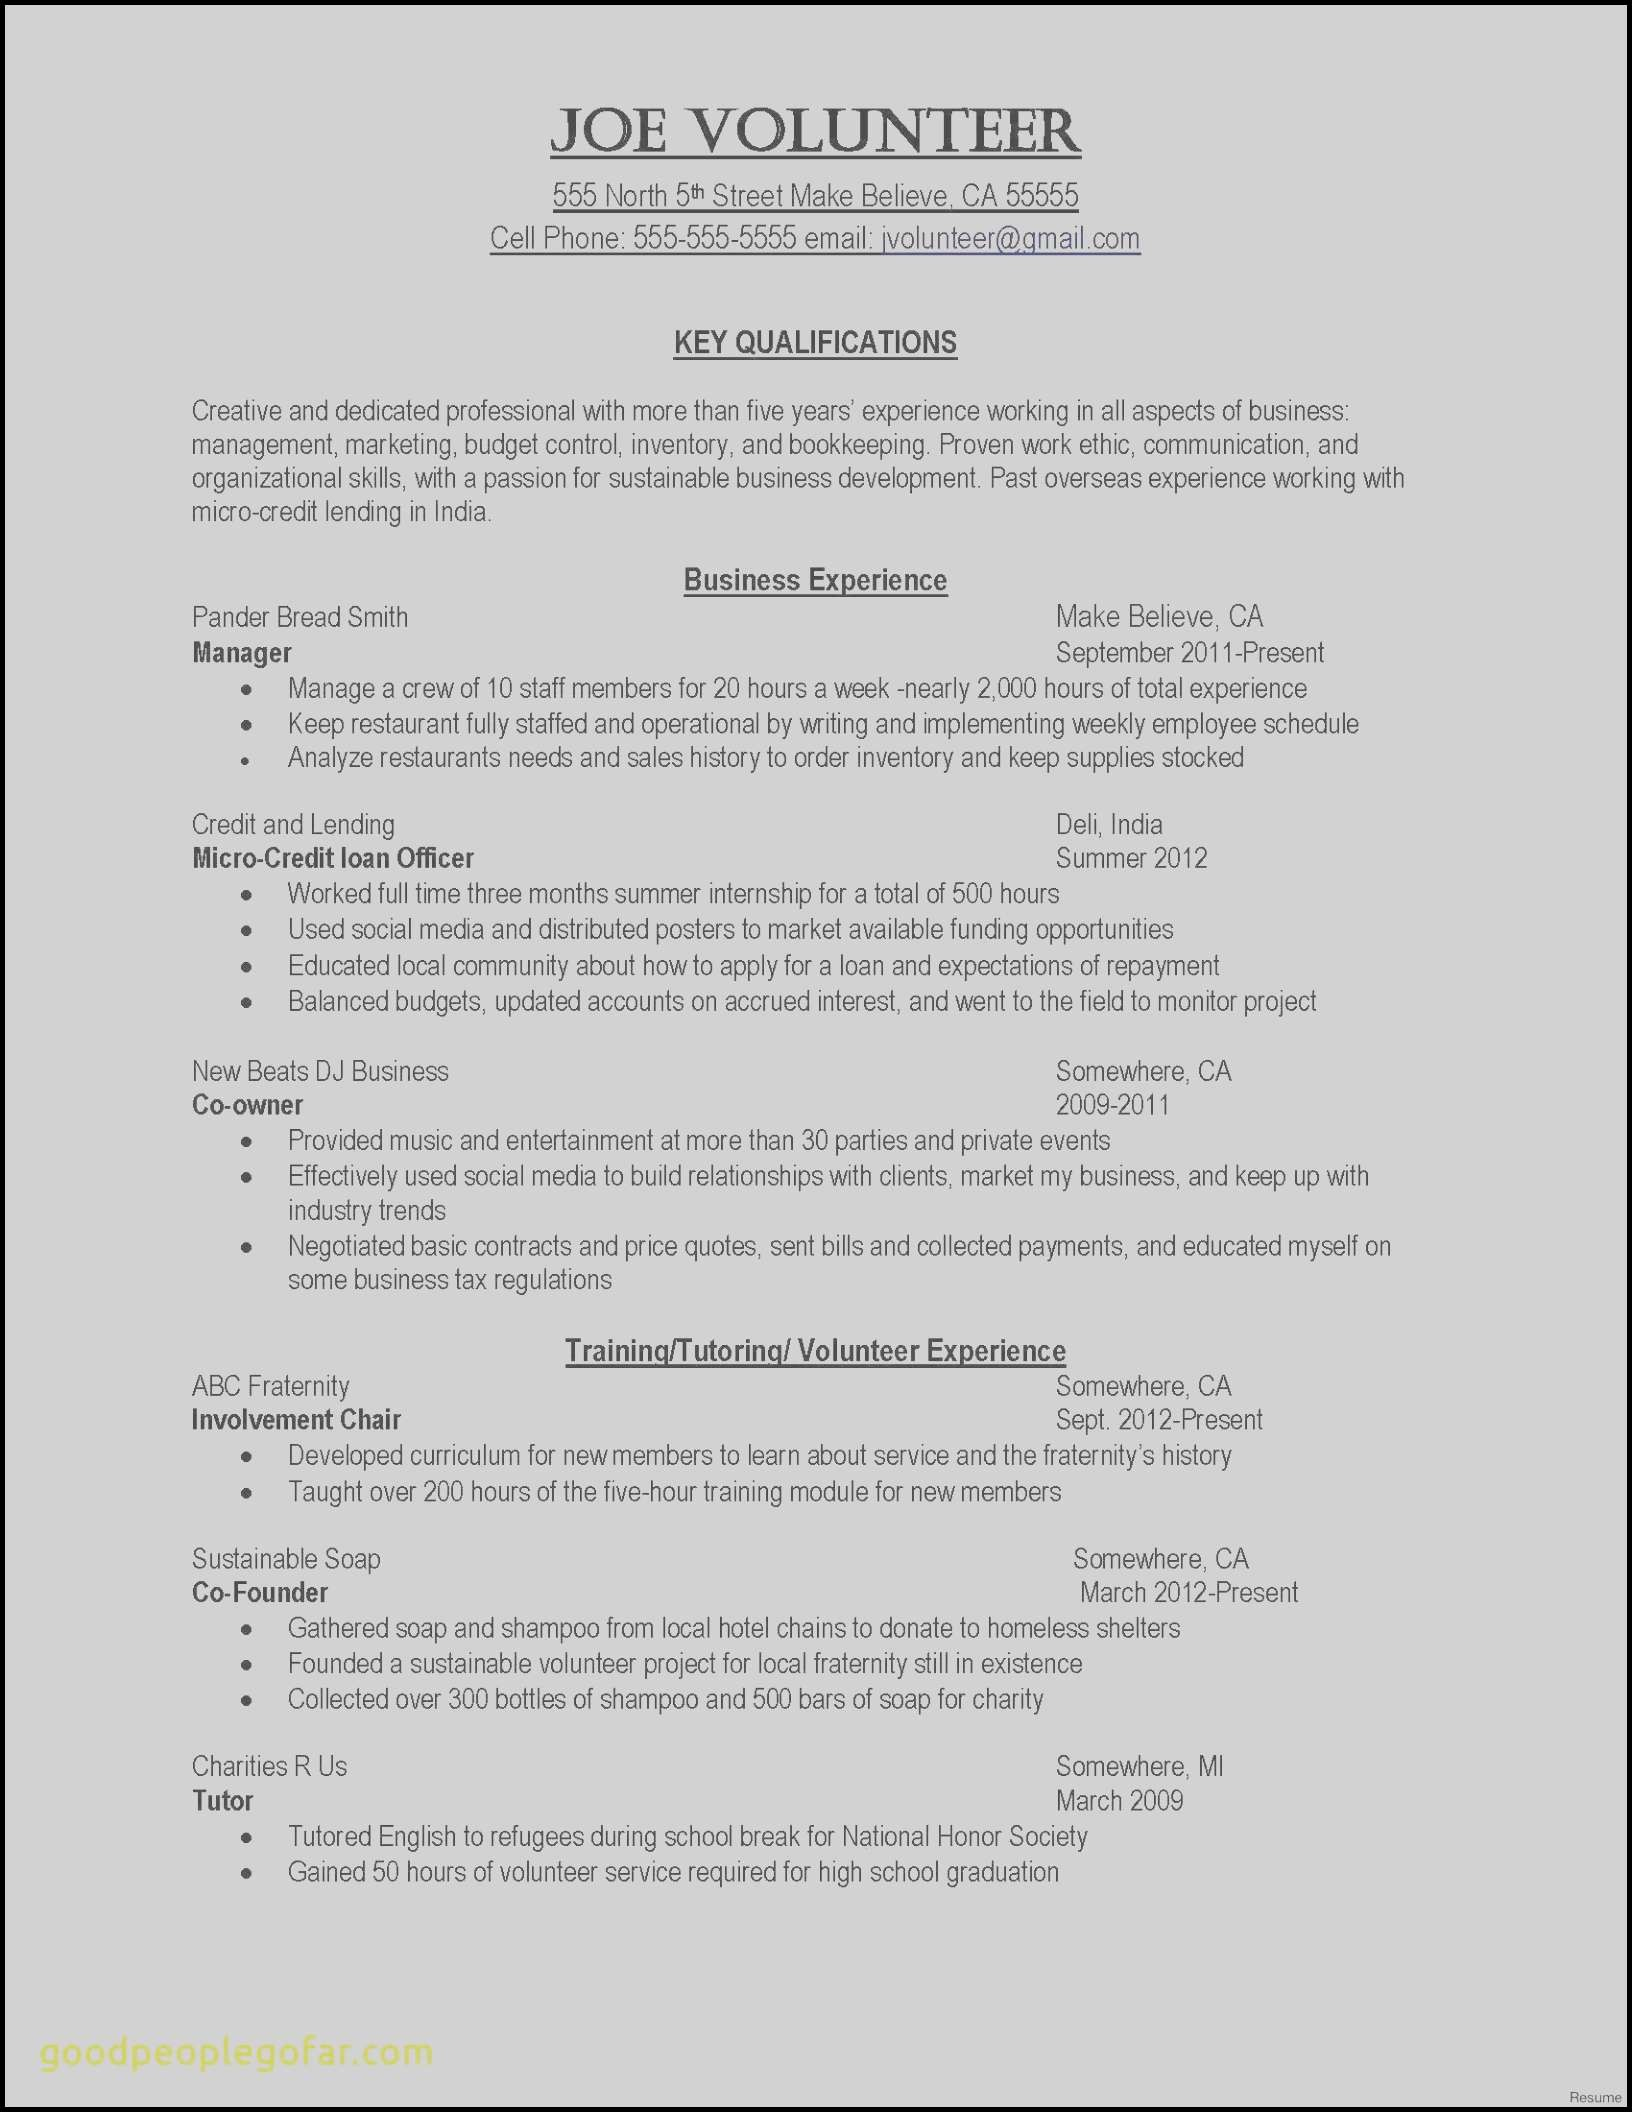 Resume For Graduate School Sample Resume For Graduate School In Psychology Cool Photography Sample Resume For Graduate School Application Antique Sample Resumes Of Sample Resume For Graduate School I resume for graduate school|wikiresume.com